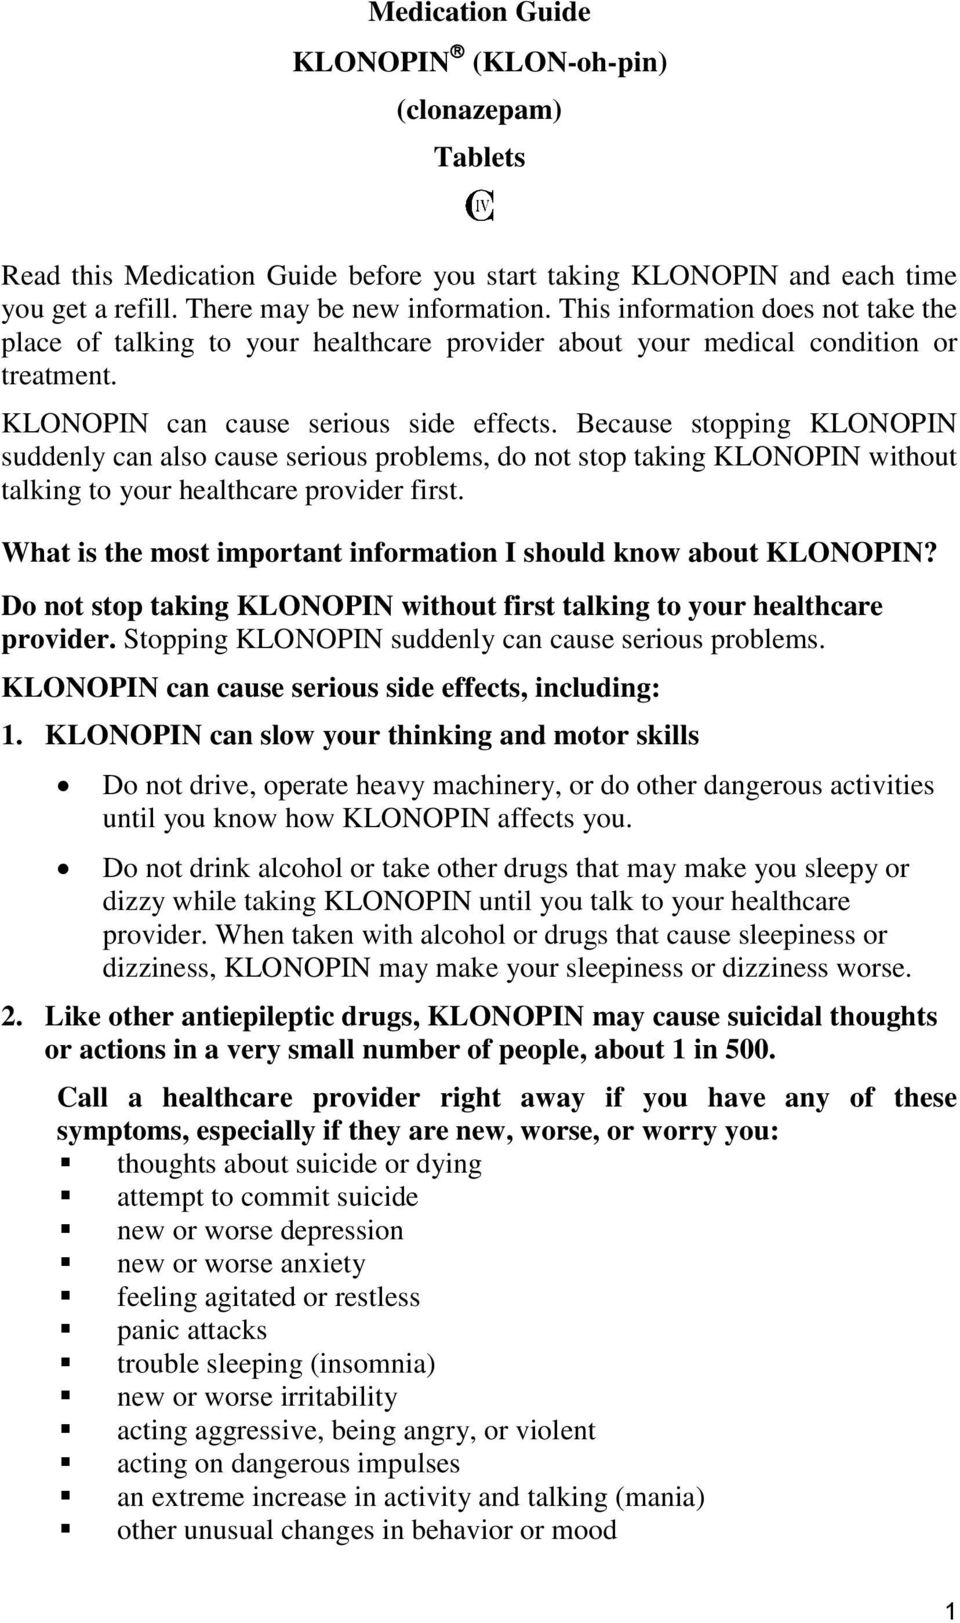 Because stopping KLONOPIN suddenly can also cause serious problems, do not stop taking KLONOPIN without talking to your healthcare provider first.